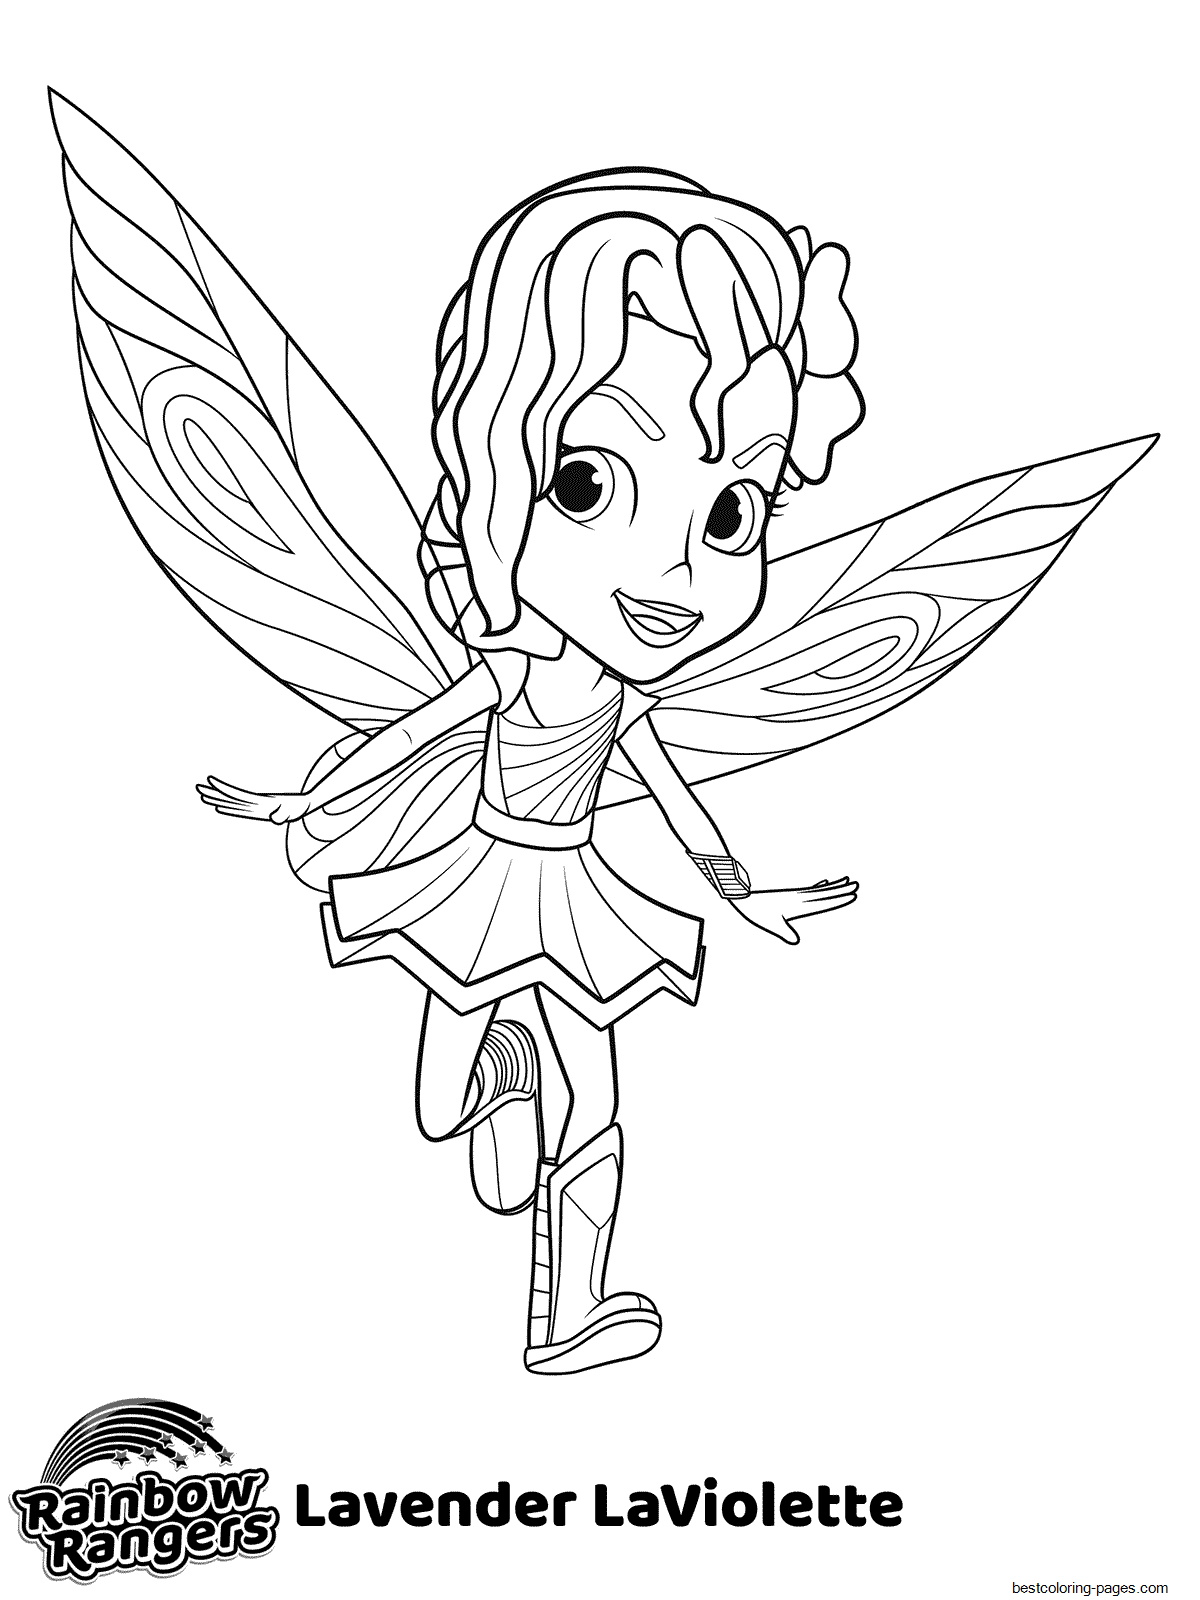 rainbow rangers coloring pages disegno di rosie redd di rainbow rangers da colorare pages coloring rangers rainbow